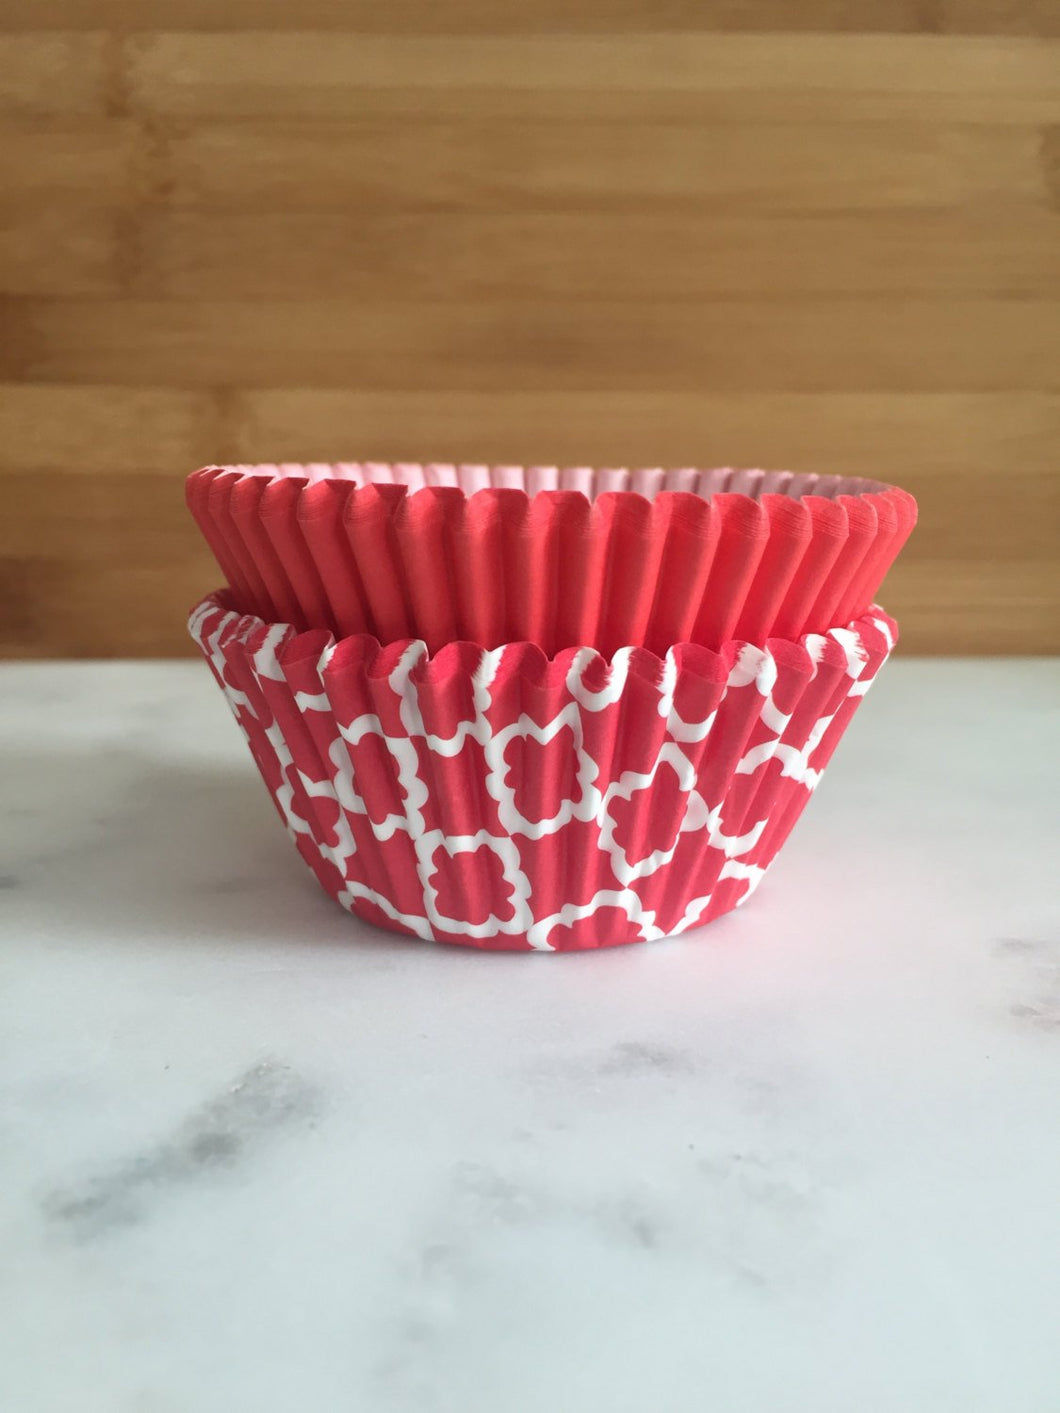 Red Moroccan Design Cupcake Liners, Standard Sized, Baking Cups (50)